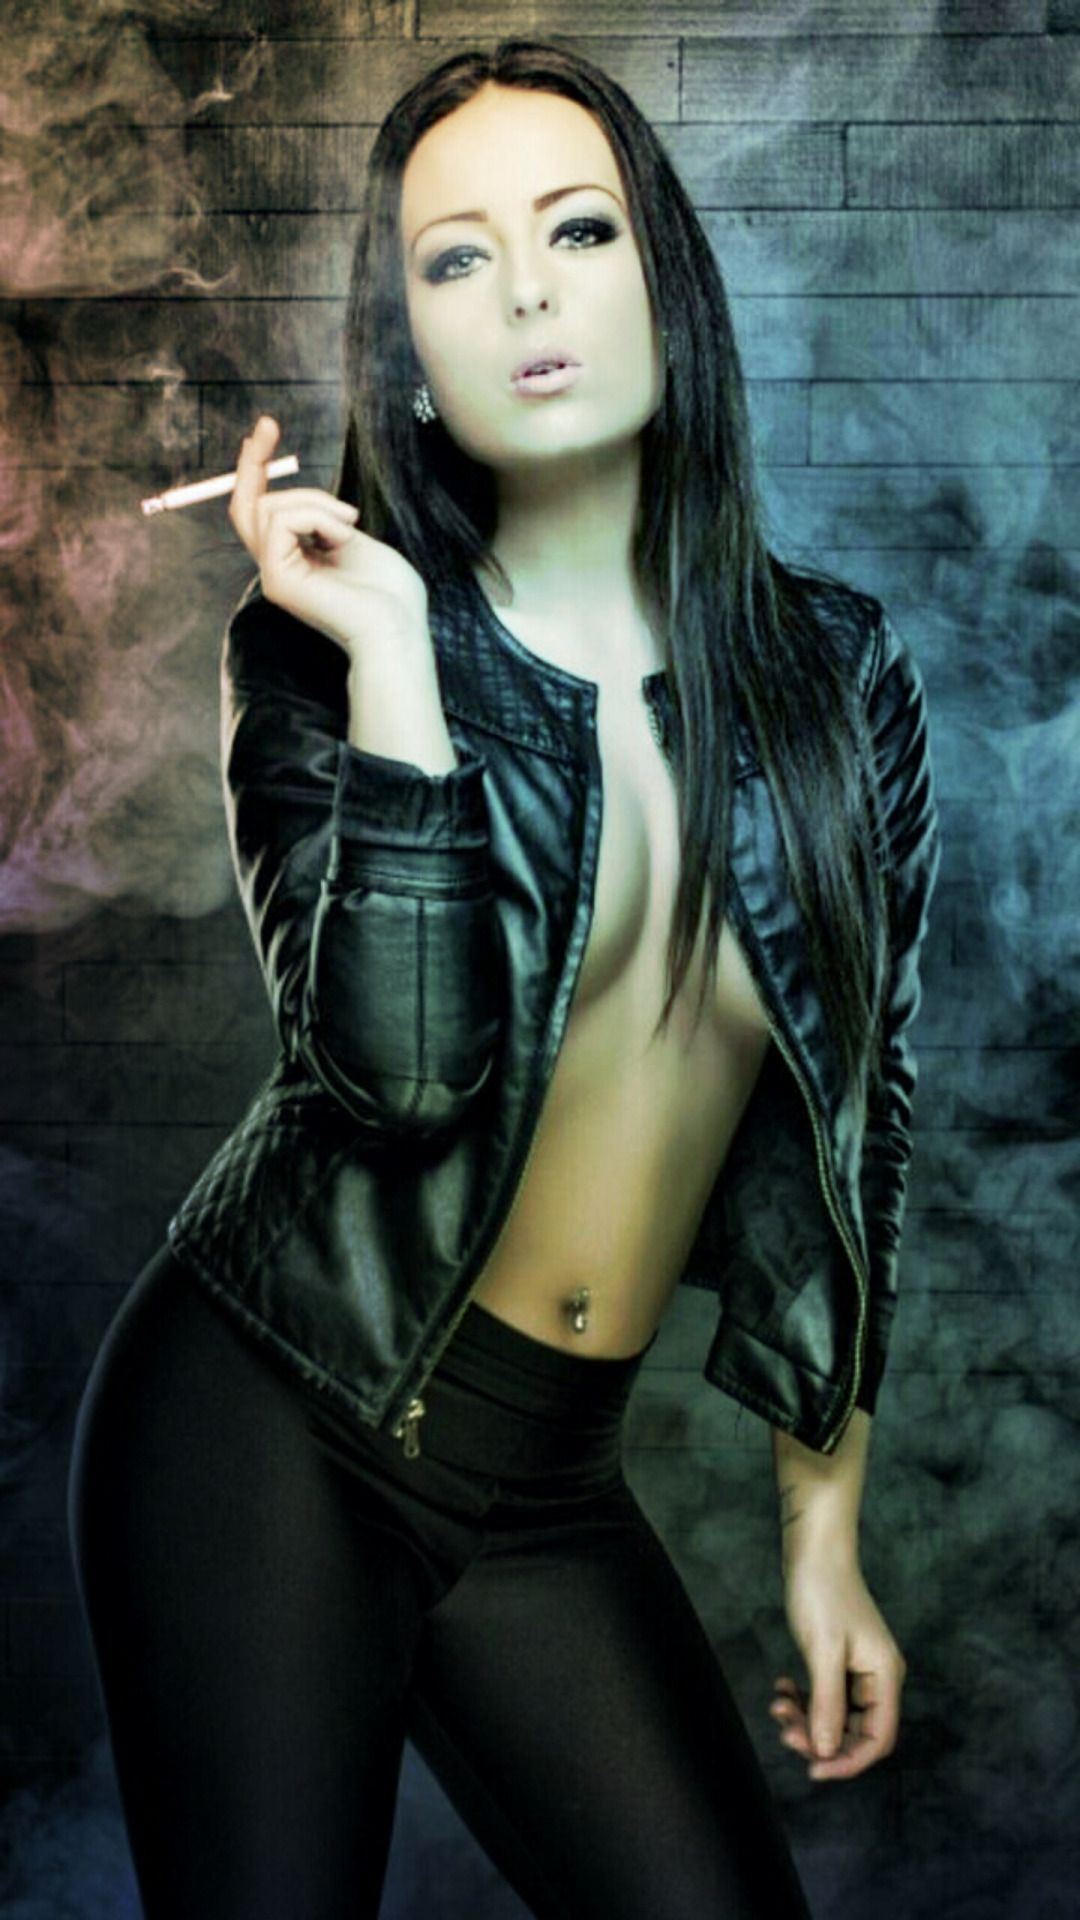 Smoking obsession fetish curious question